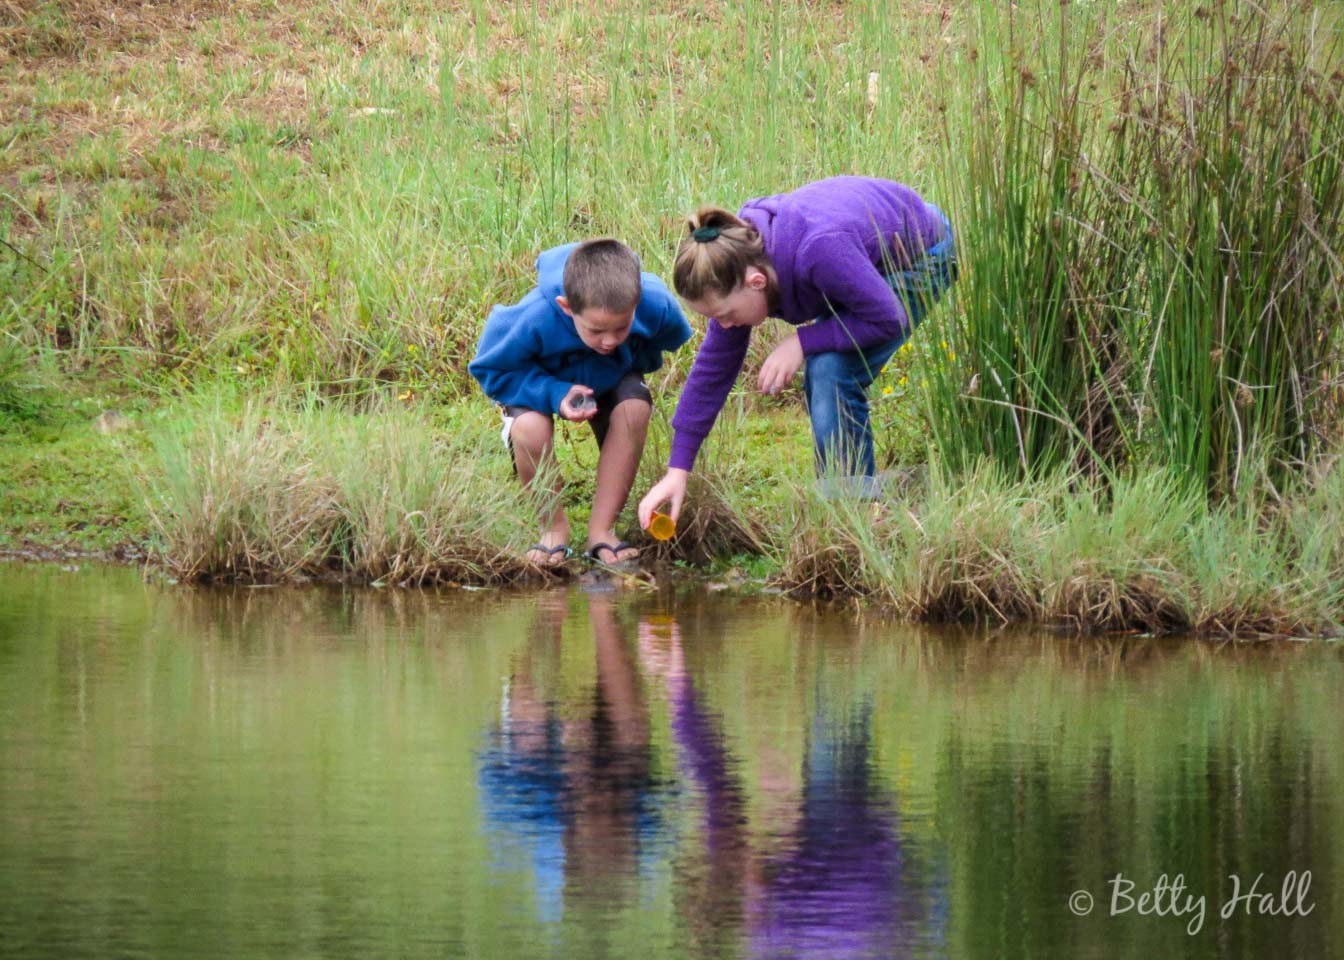 Children exploring a pond